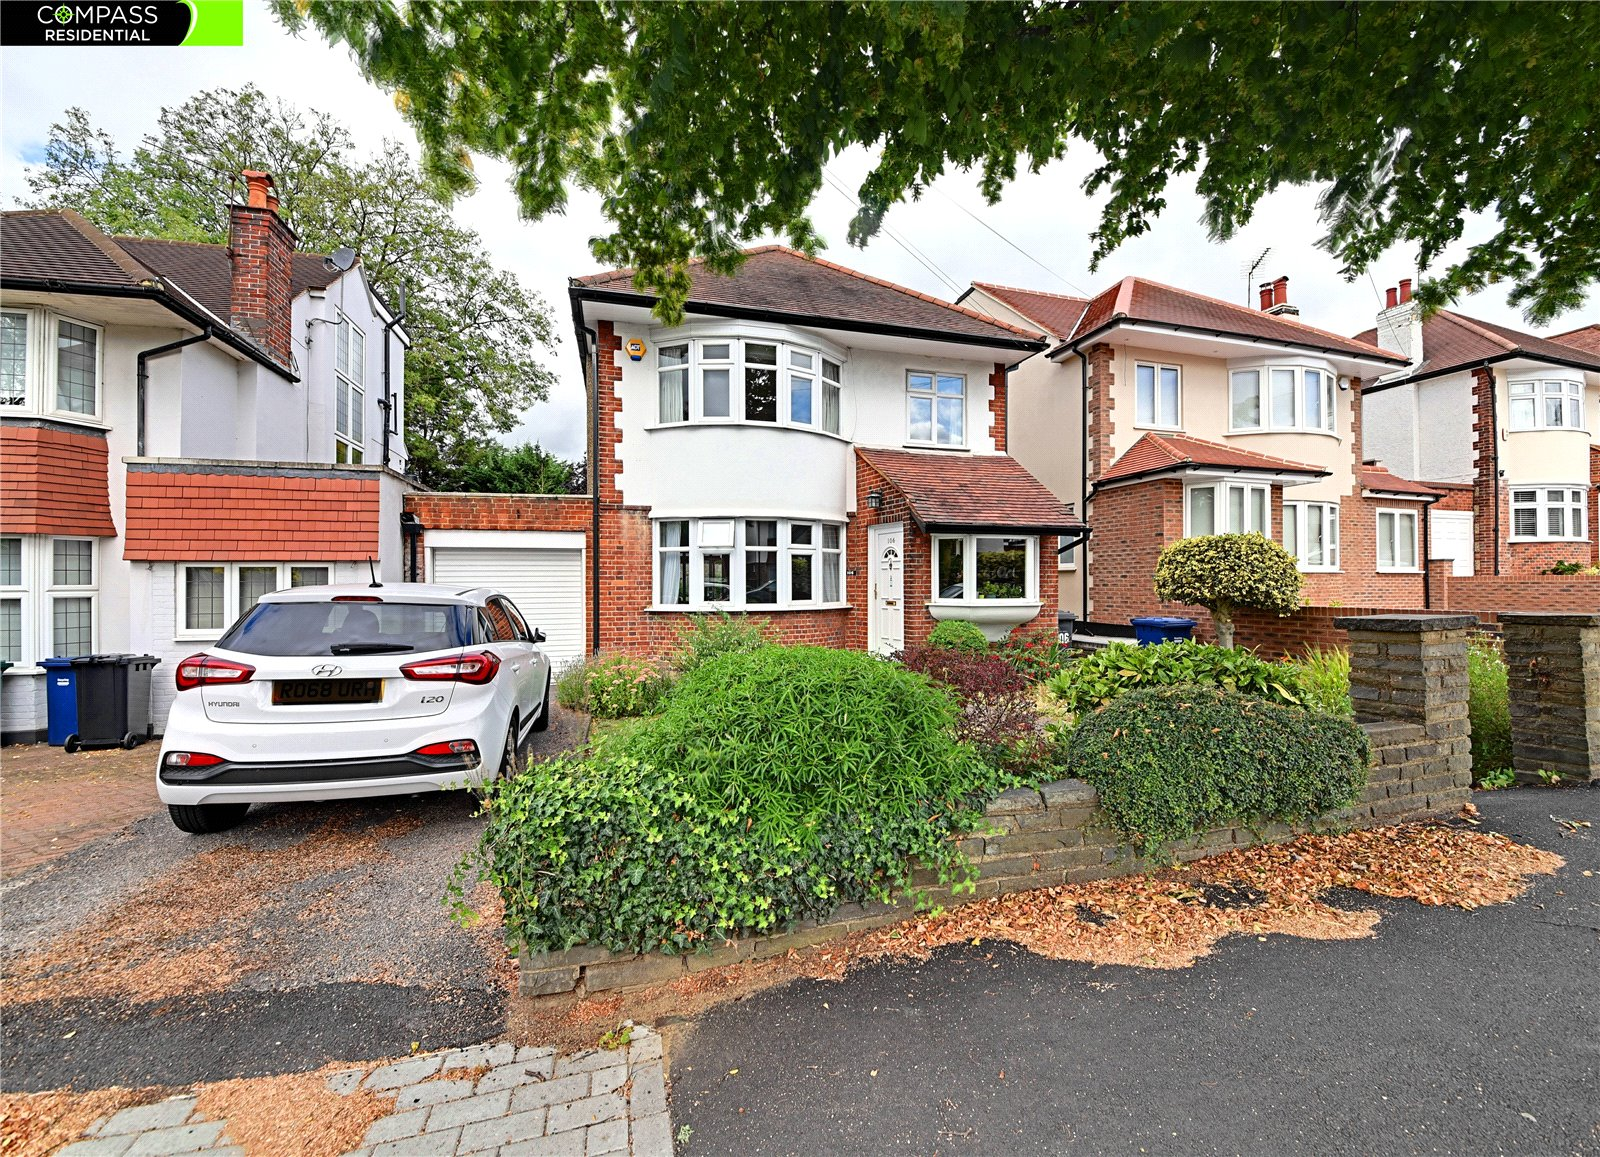 3 bed house for sale in Totteridge, N20 8HL, N20